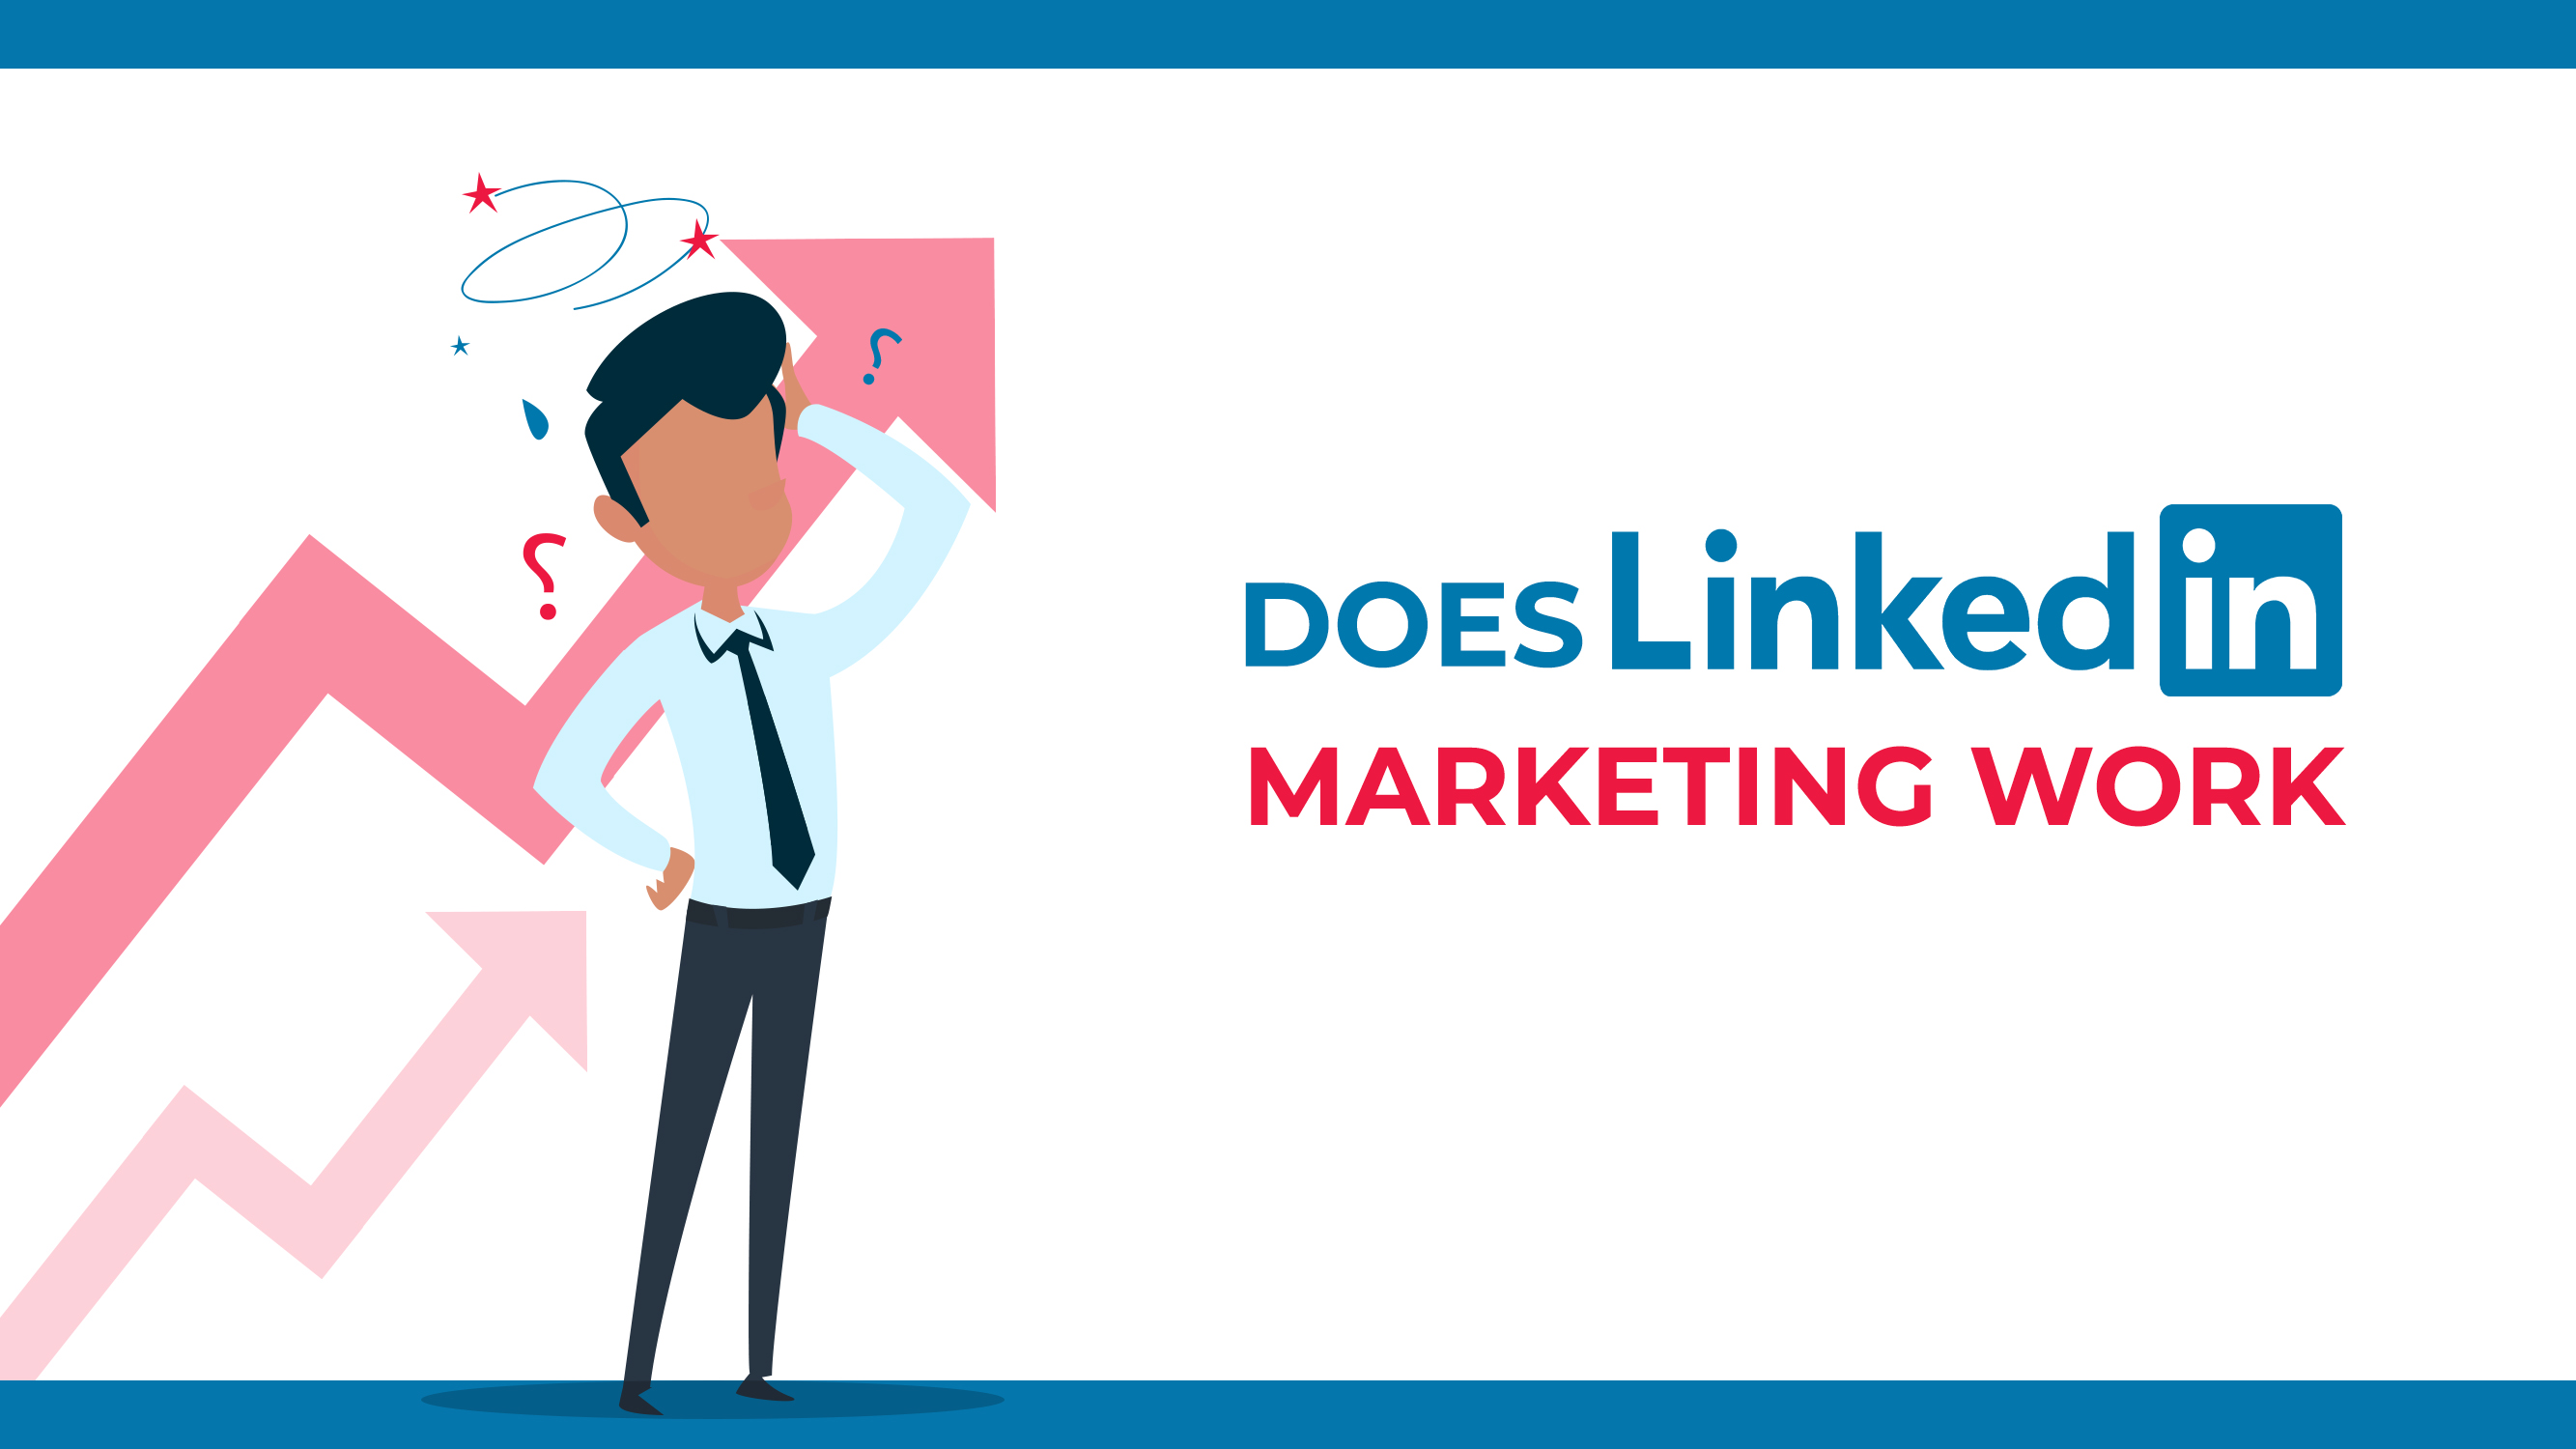 O marketing do LinkedIn funciona?